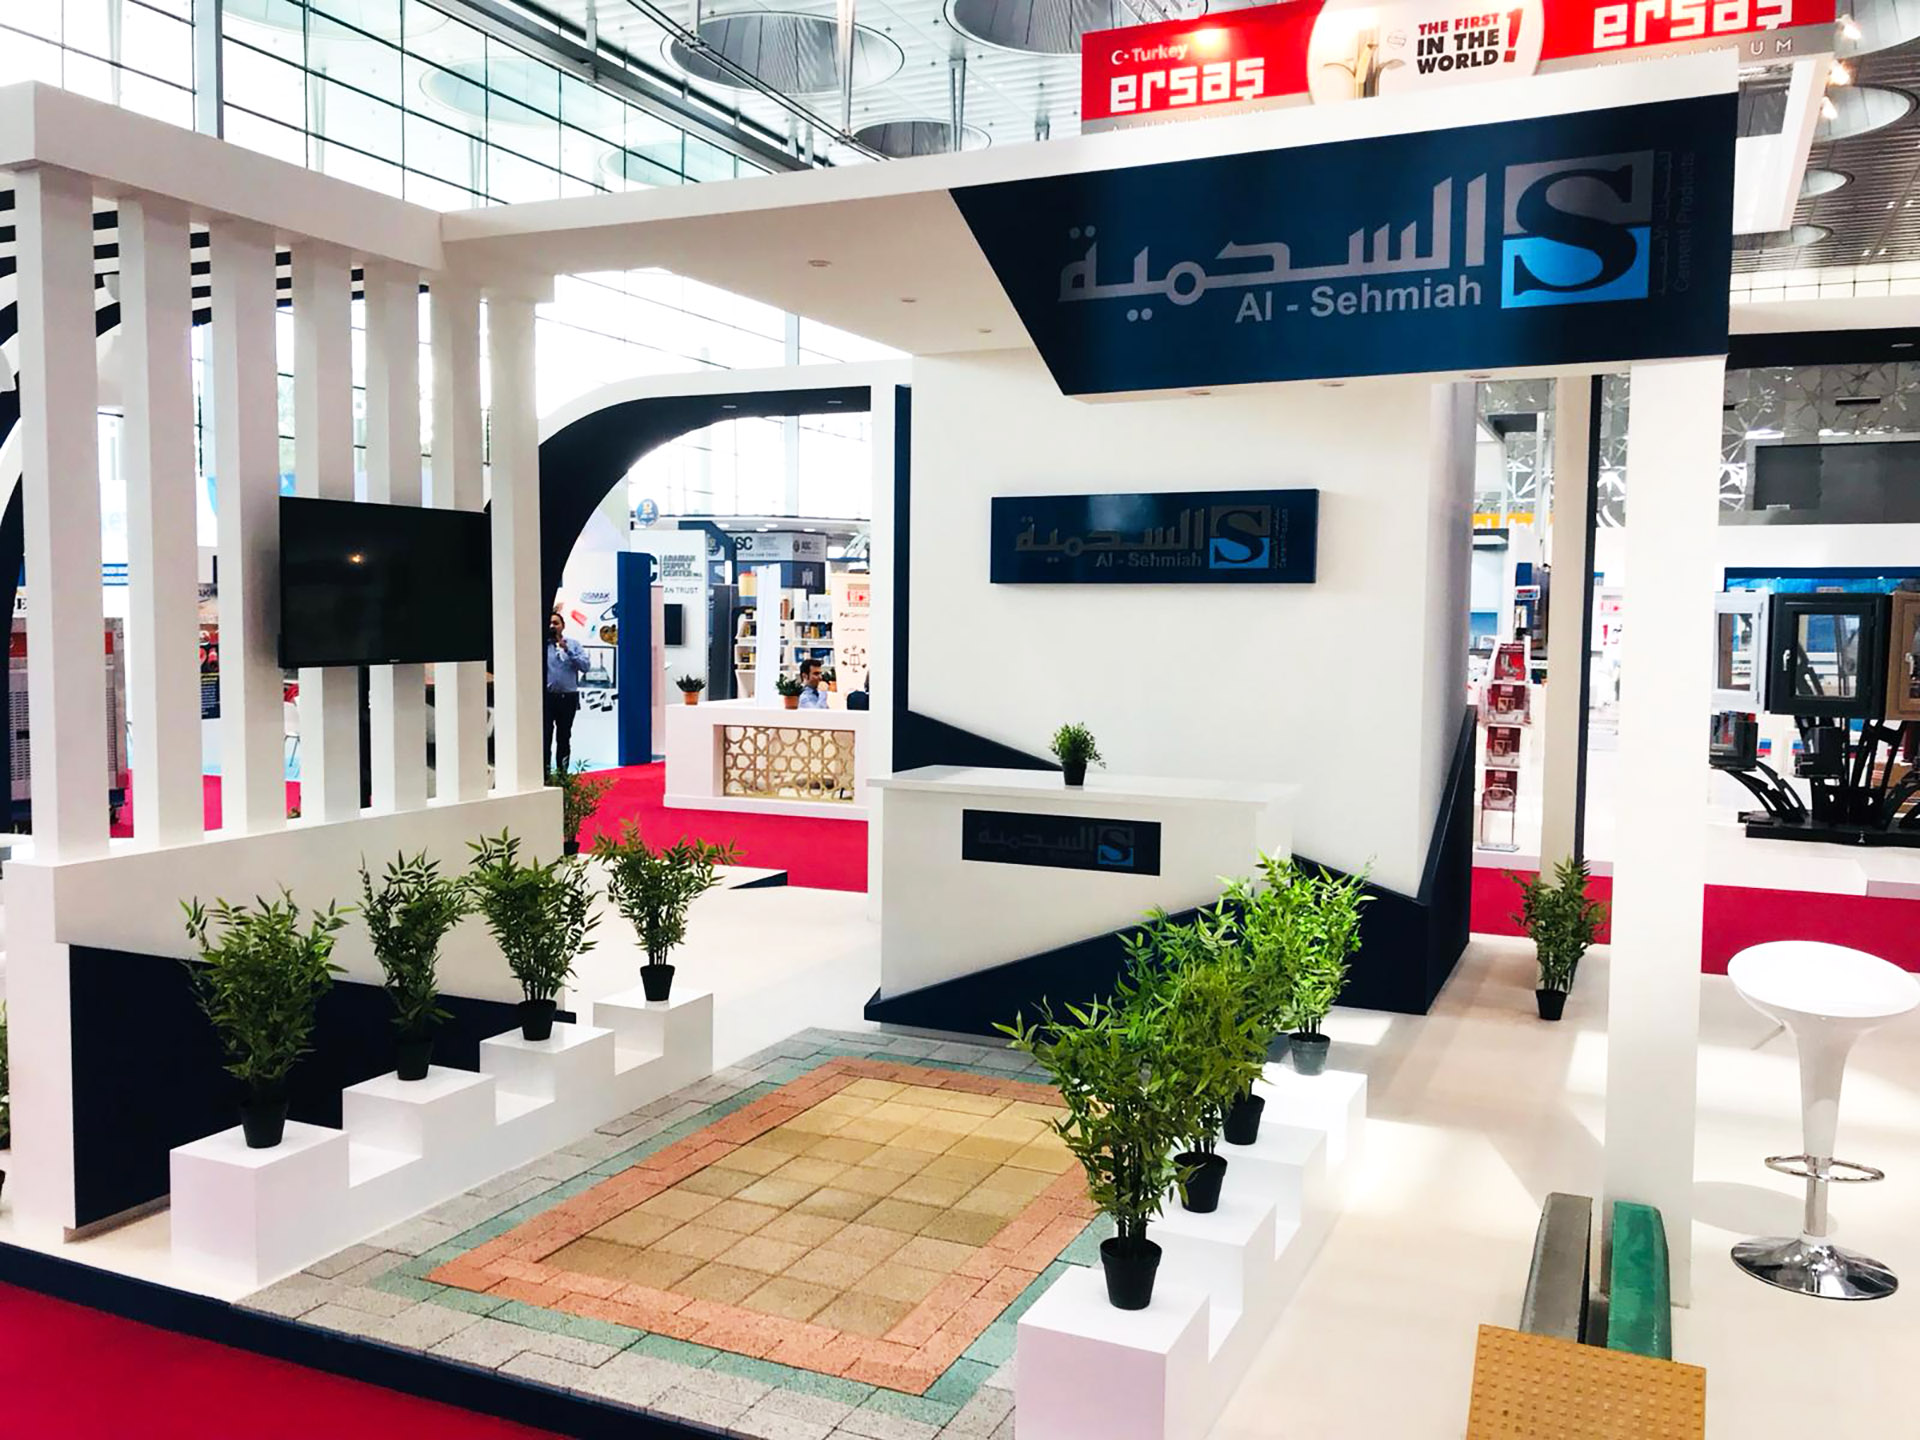 Exhibition Stand for Al Sehmiah produced and installed by ME Visual, Qatar